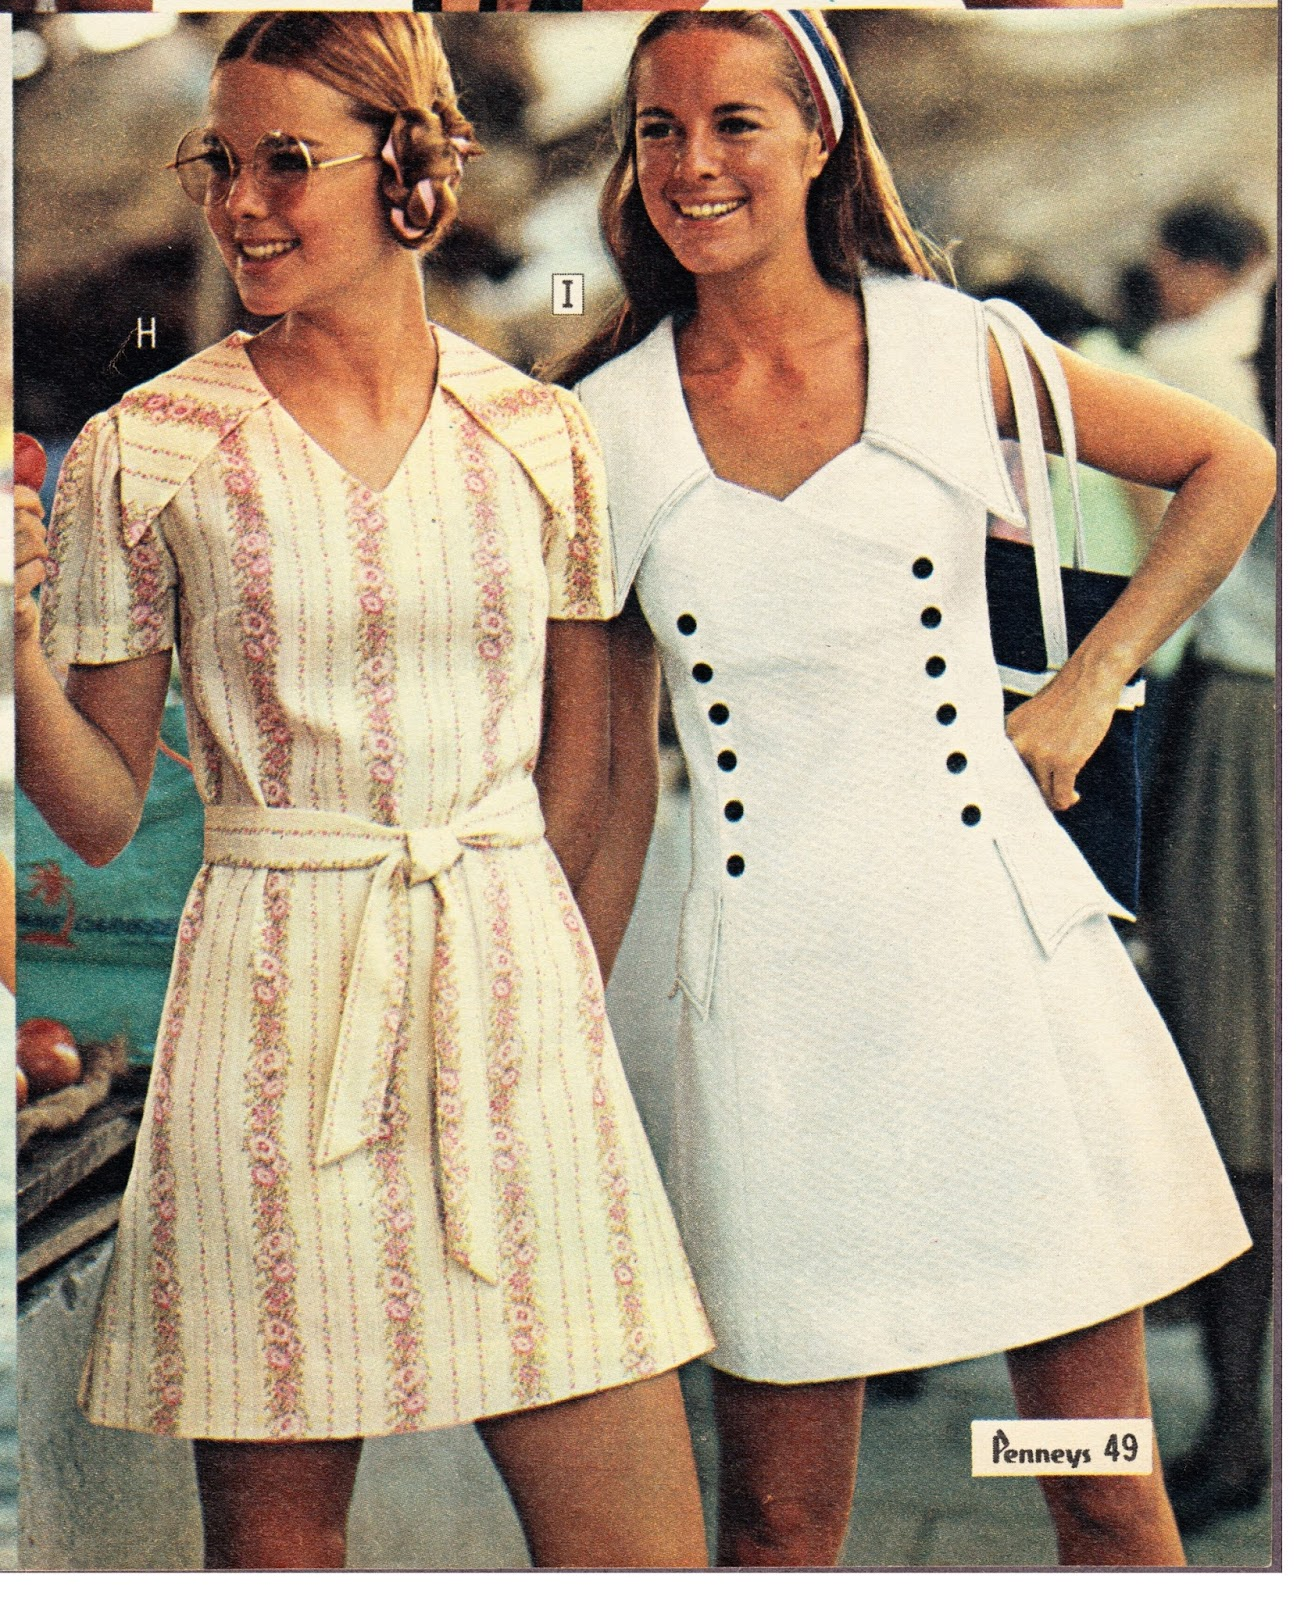 303a7b0ce29 Another shot of some groovy summer dresses from Penny s.